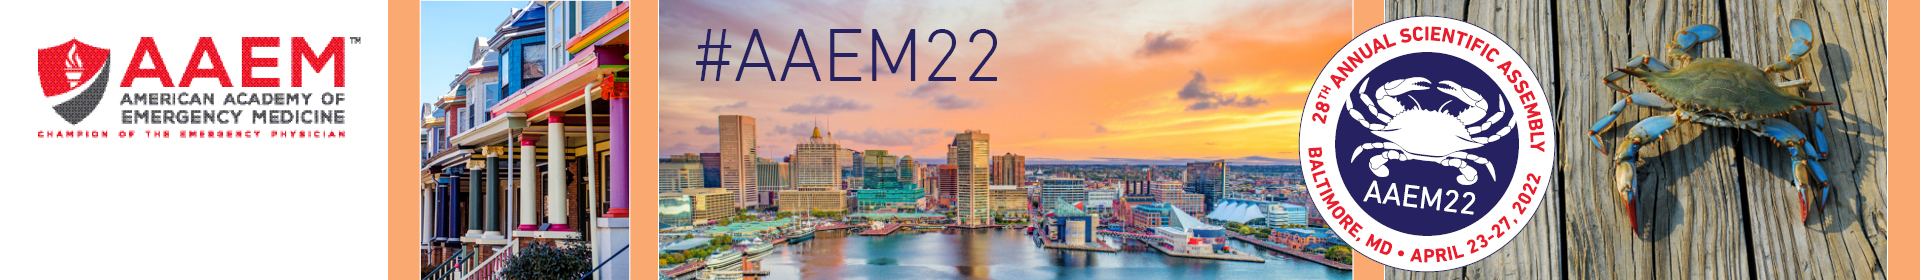 28th Annual Scientific Assembly (AAEM22) Event Banner